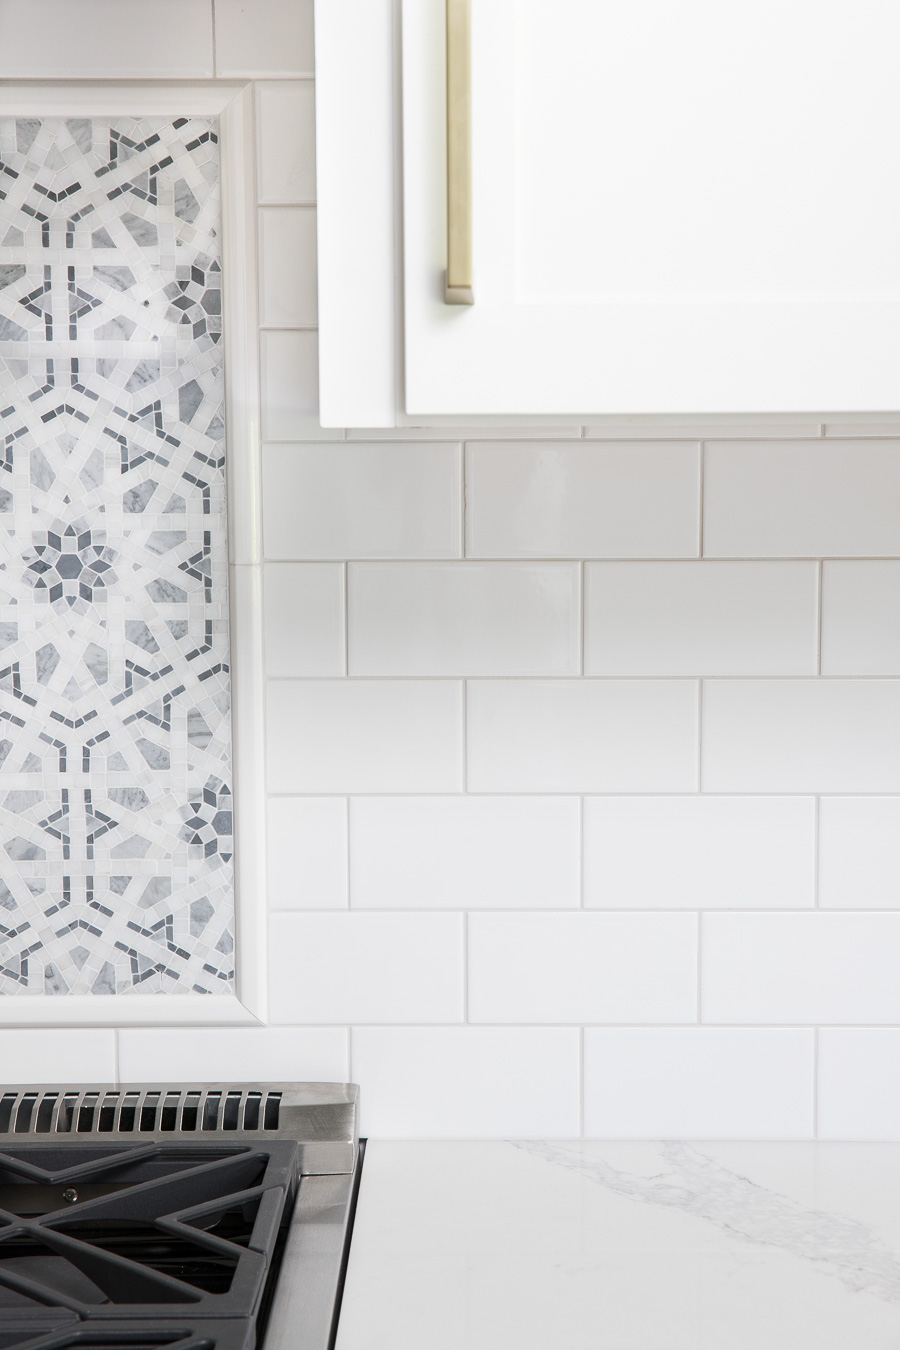 The Light Gray Grout I Chose For My White Subway Tile Mapei Keracolor Frost